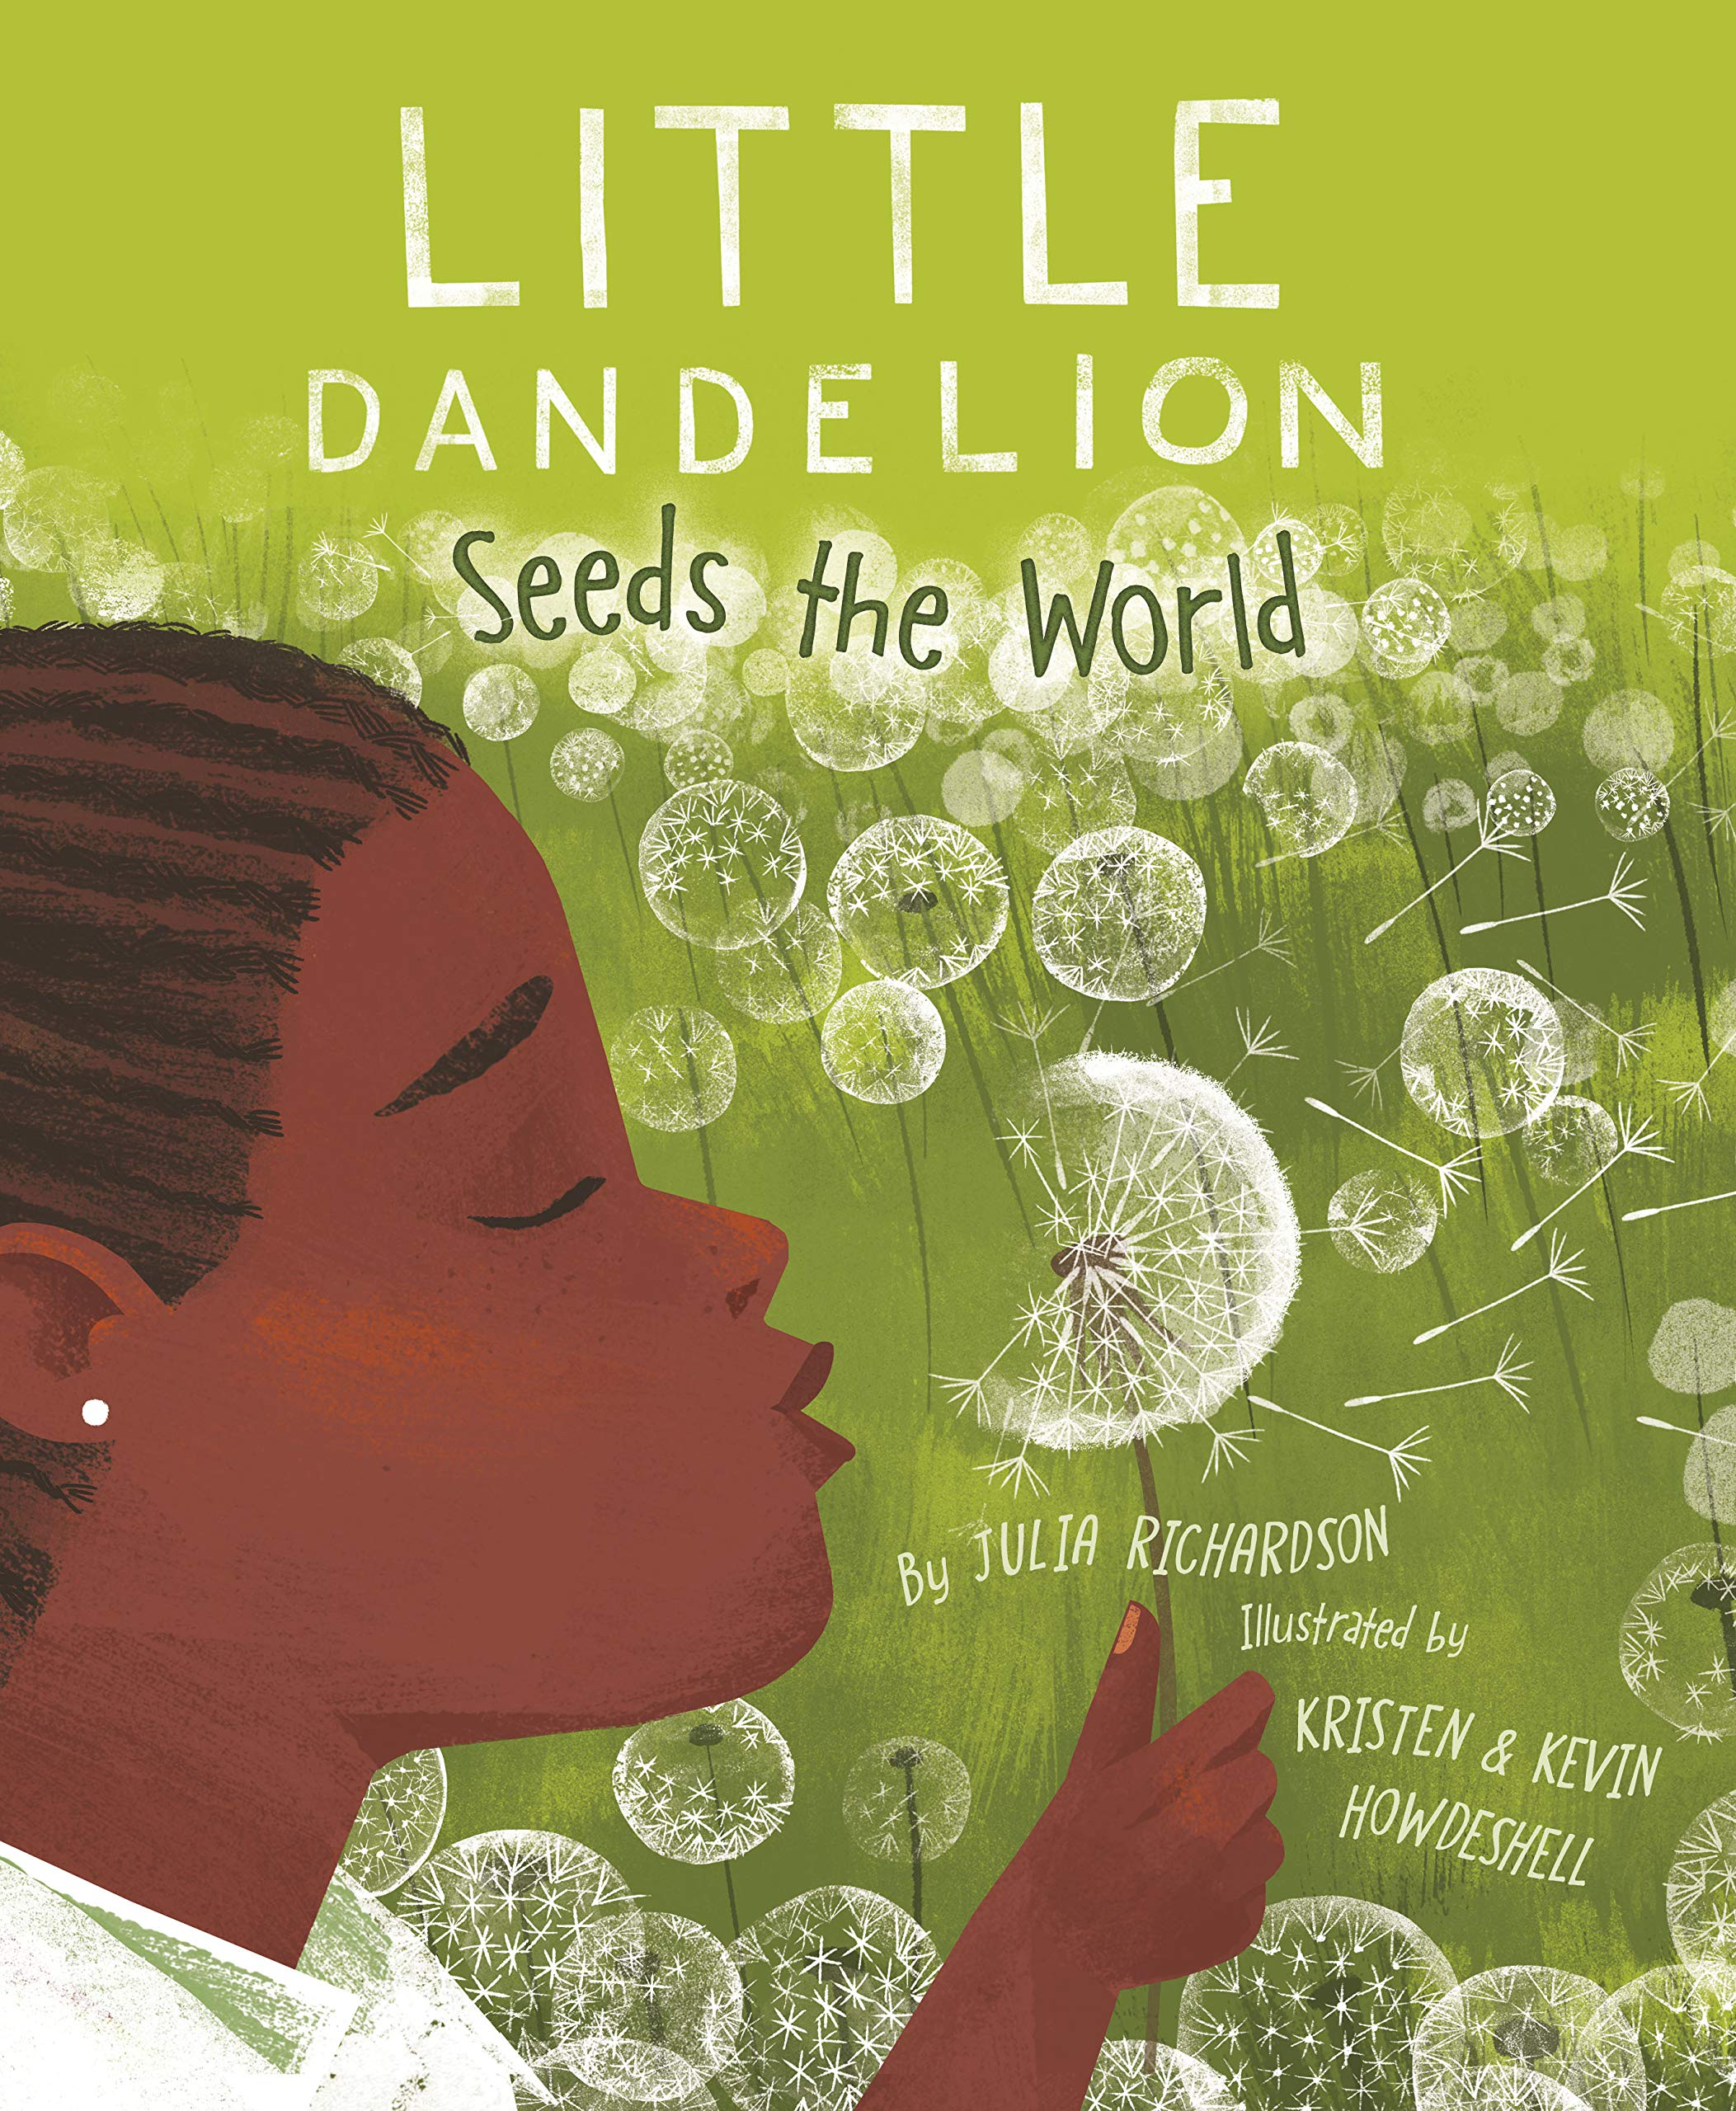 celebrate-picture-books-picture-book-review-little-dandelion-seeds-the-world-cover